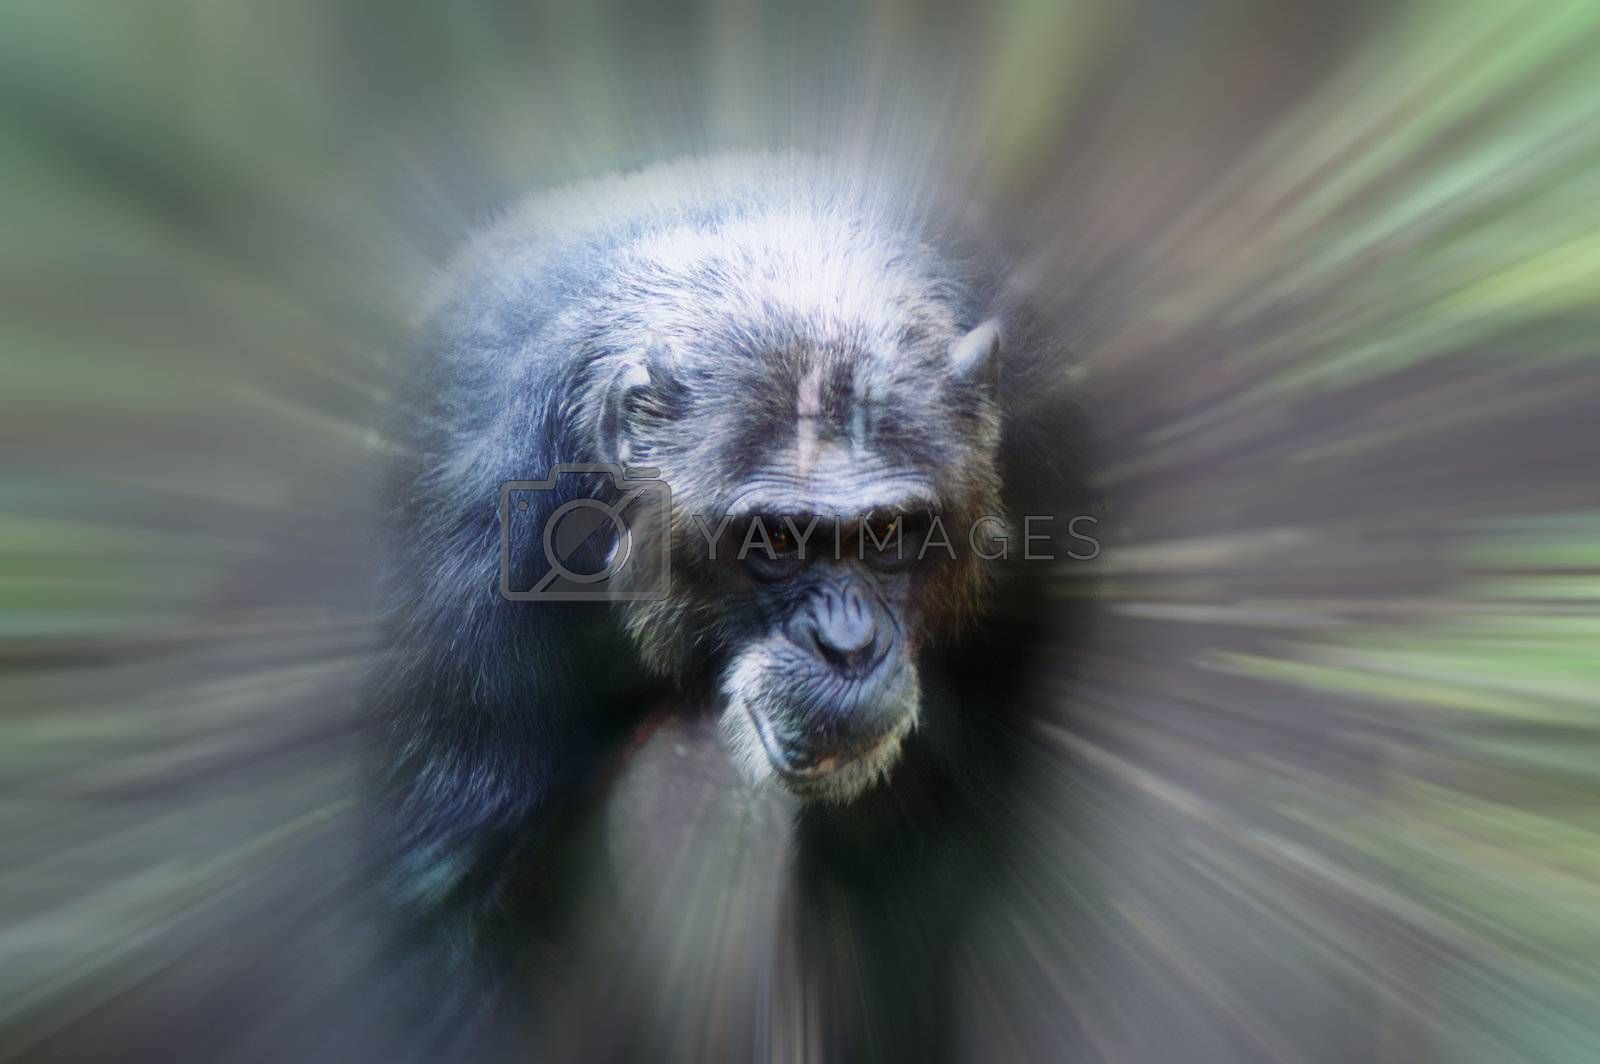 An African monkey in captivity at the zoo